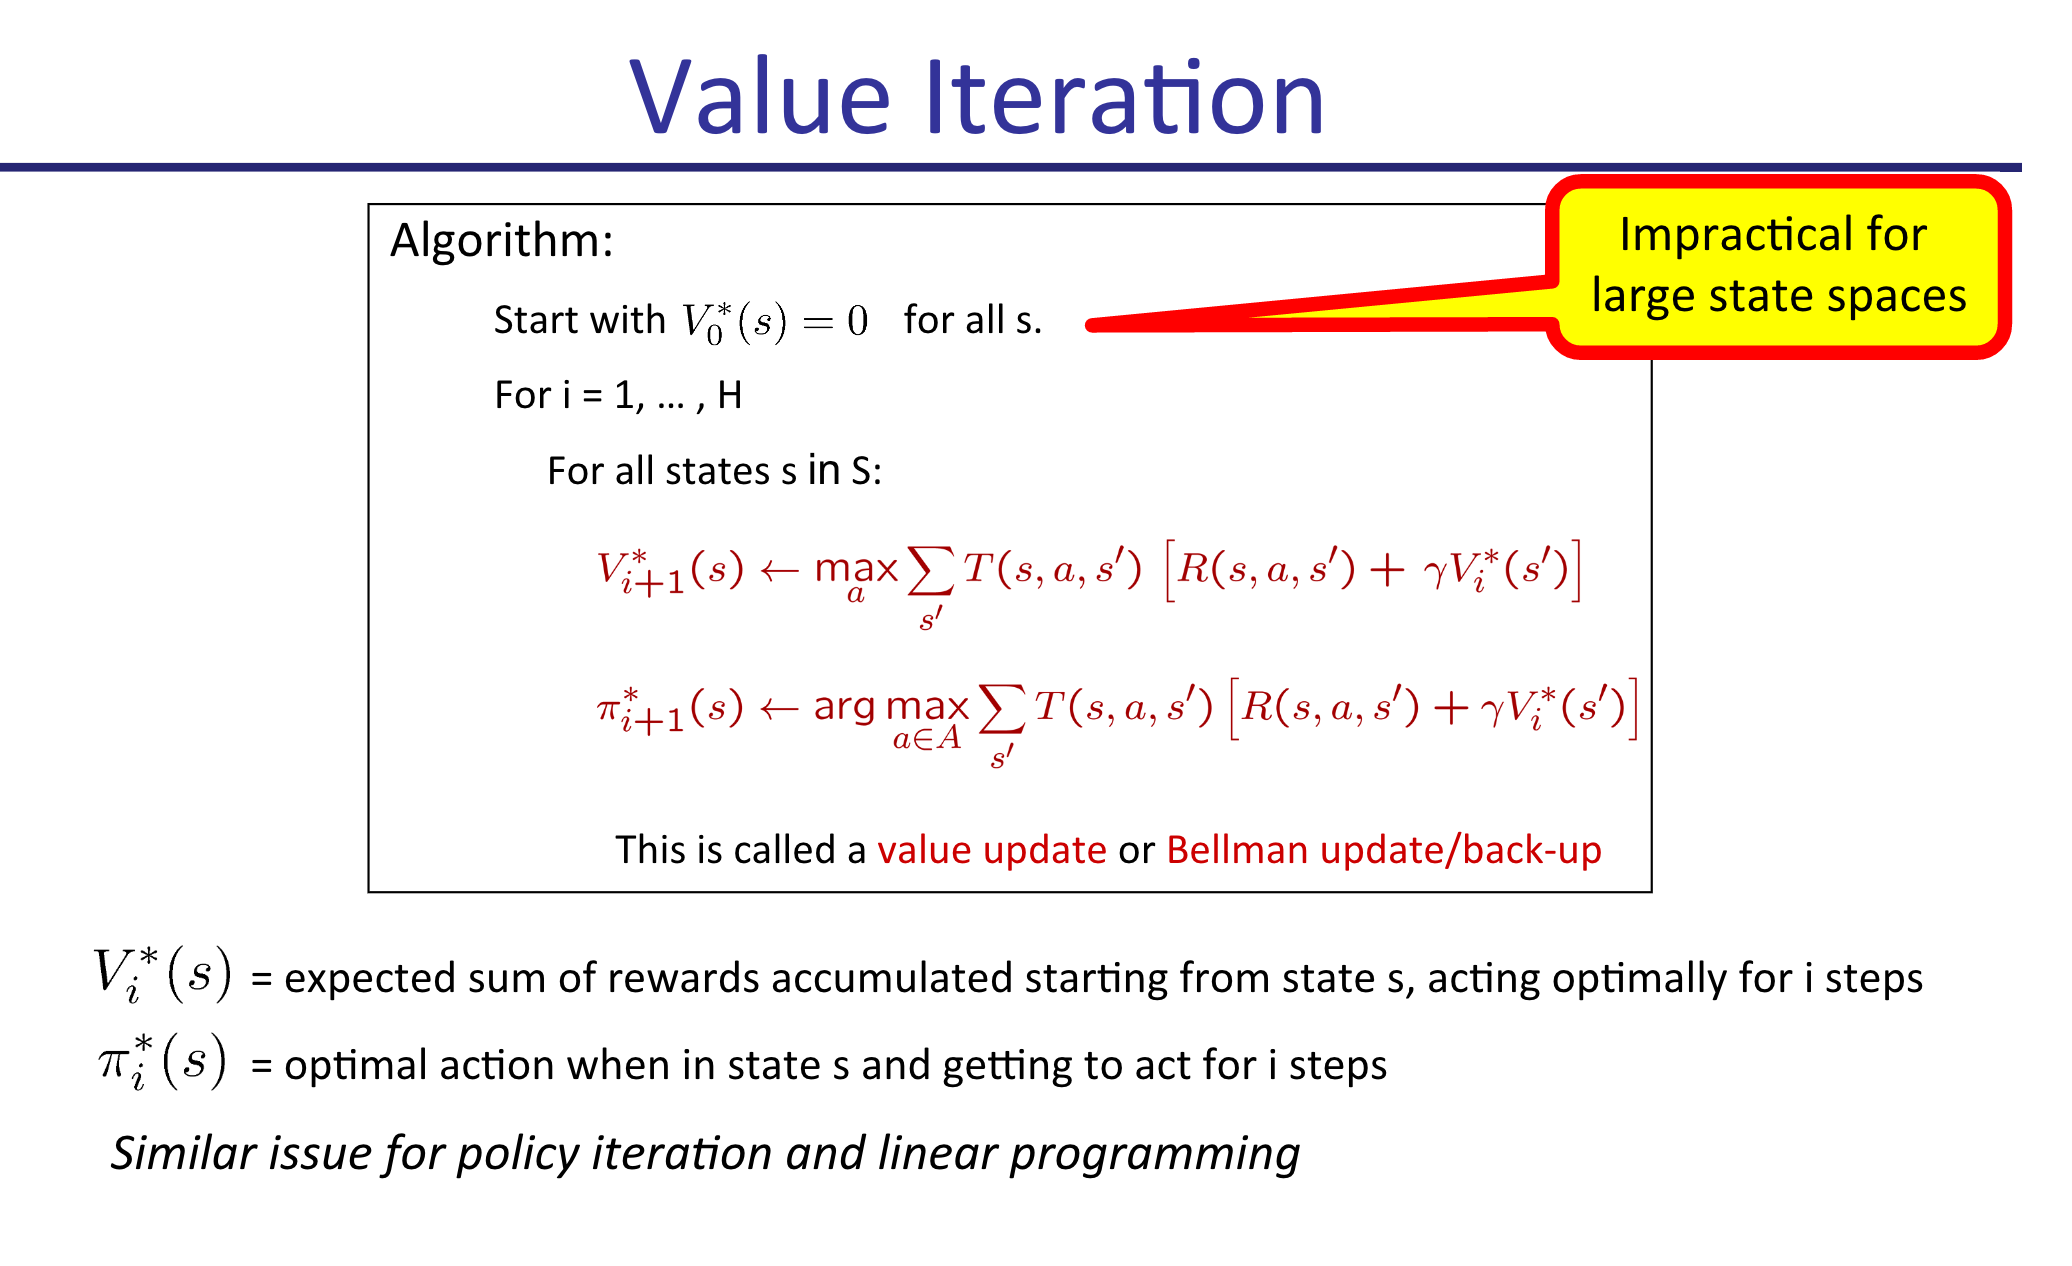 value_iteration